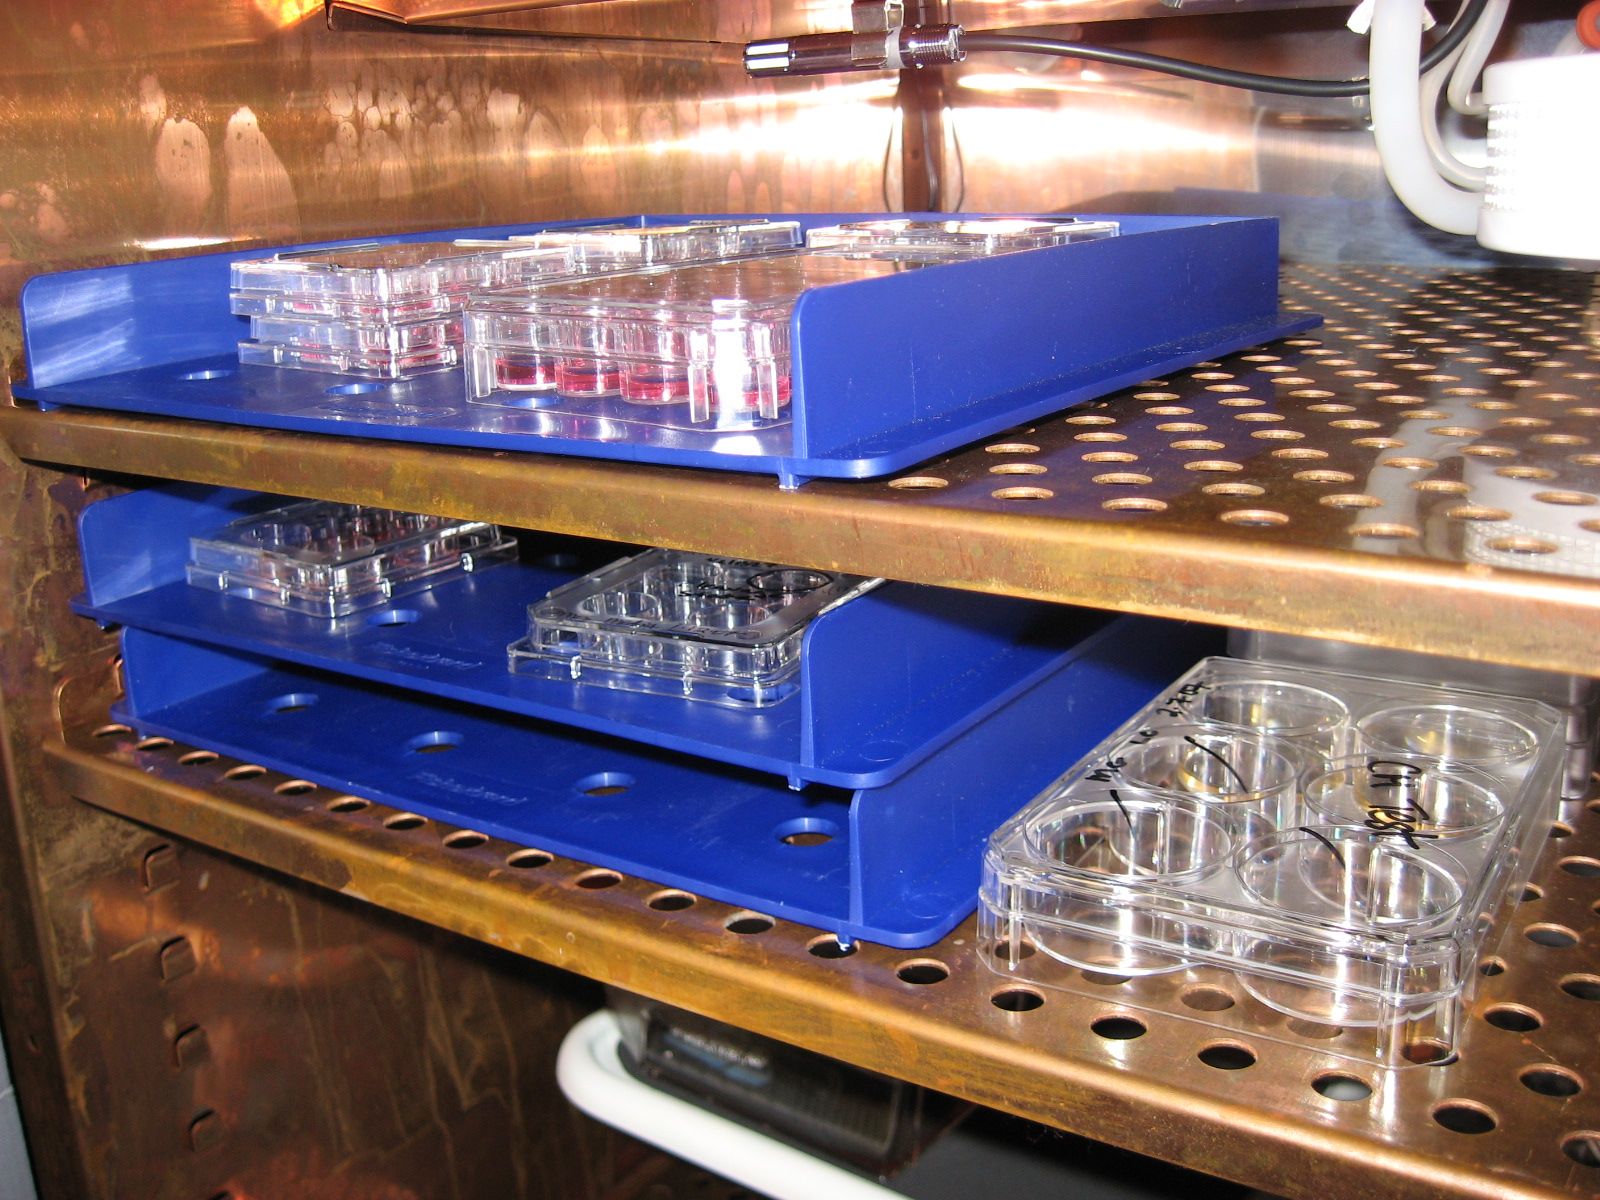 Stacks of plates containing stem cells in a cell culture incubator